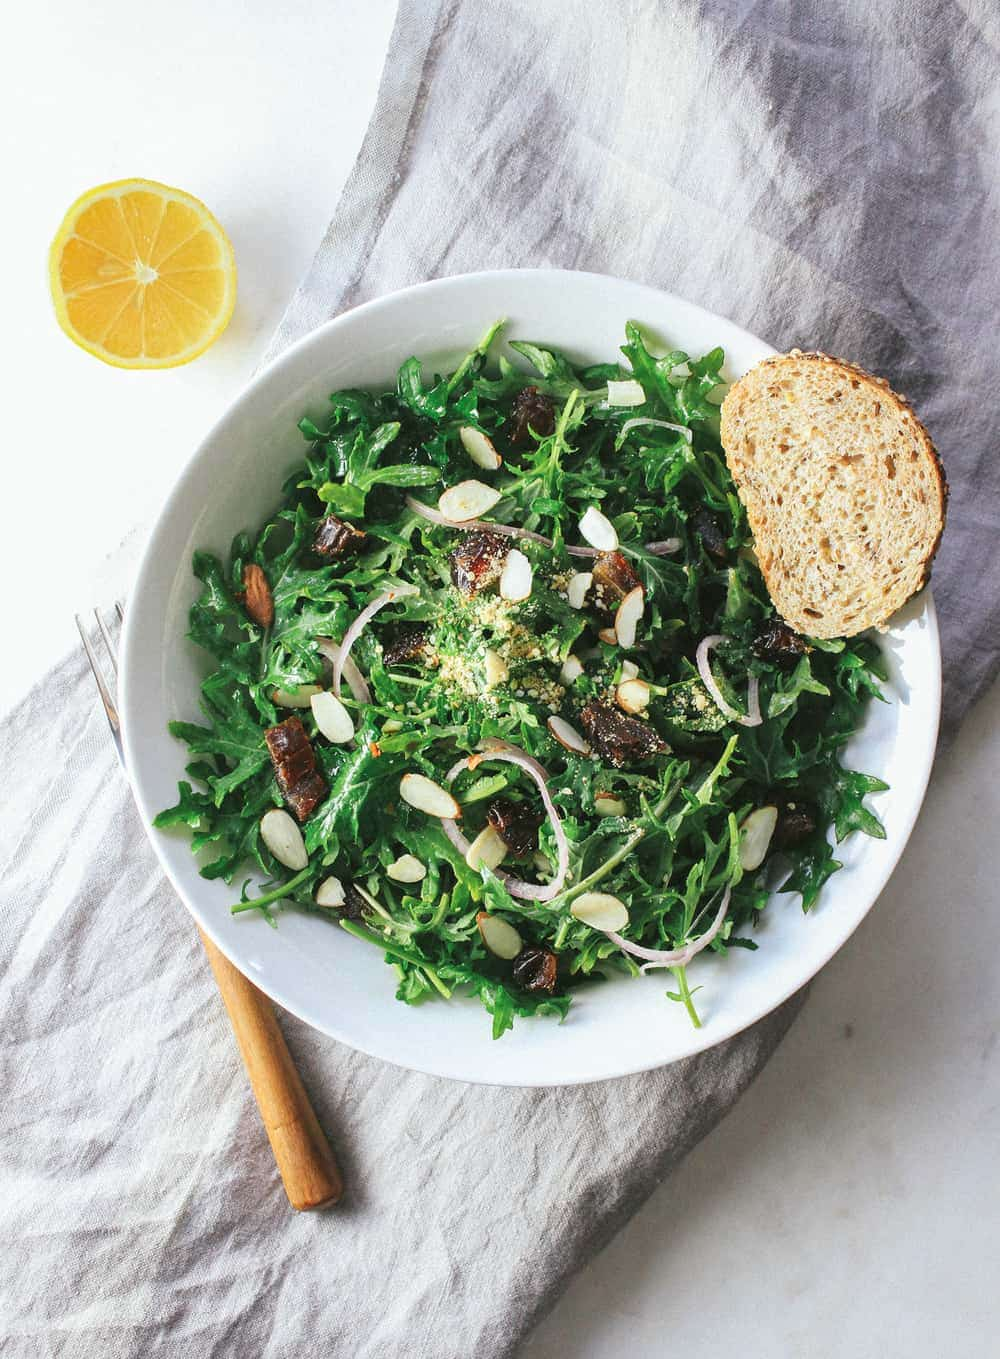 bowl full of kale, date and almond salad with wooden fork